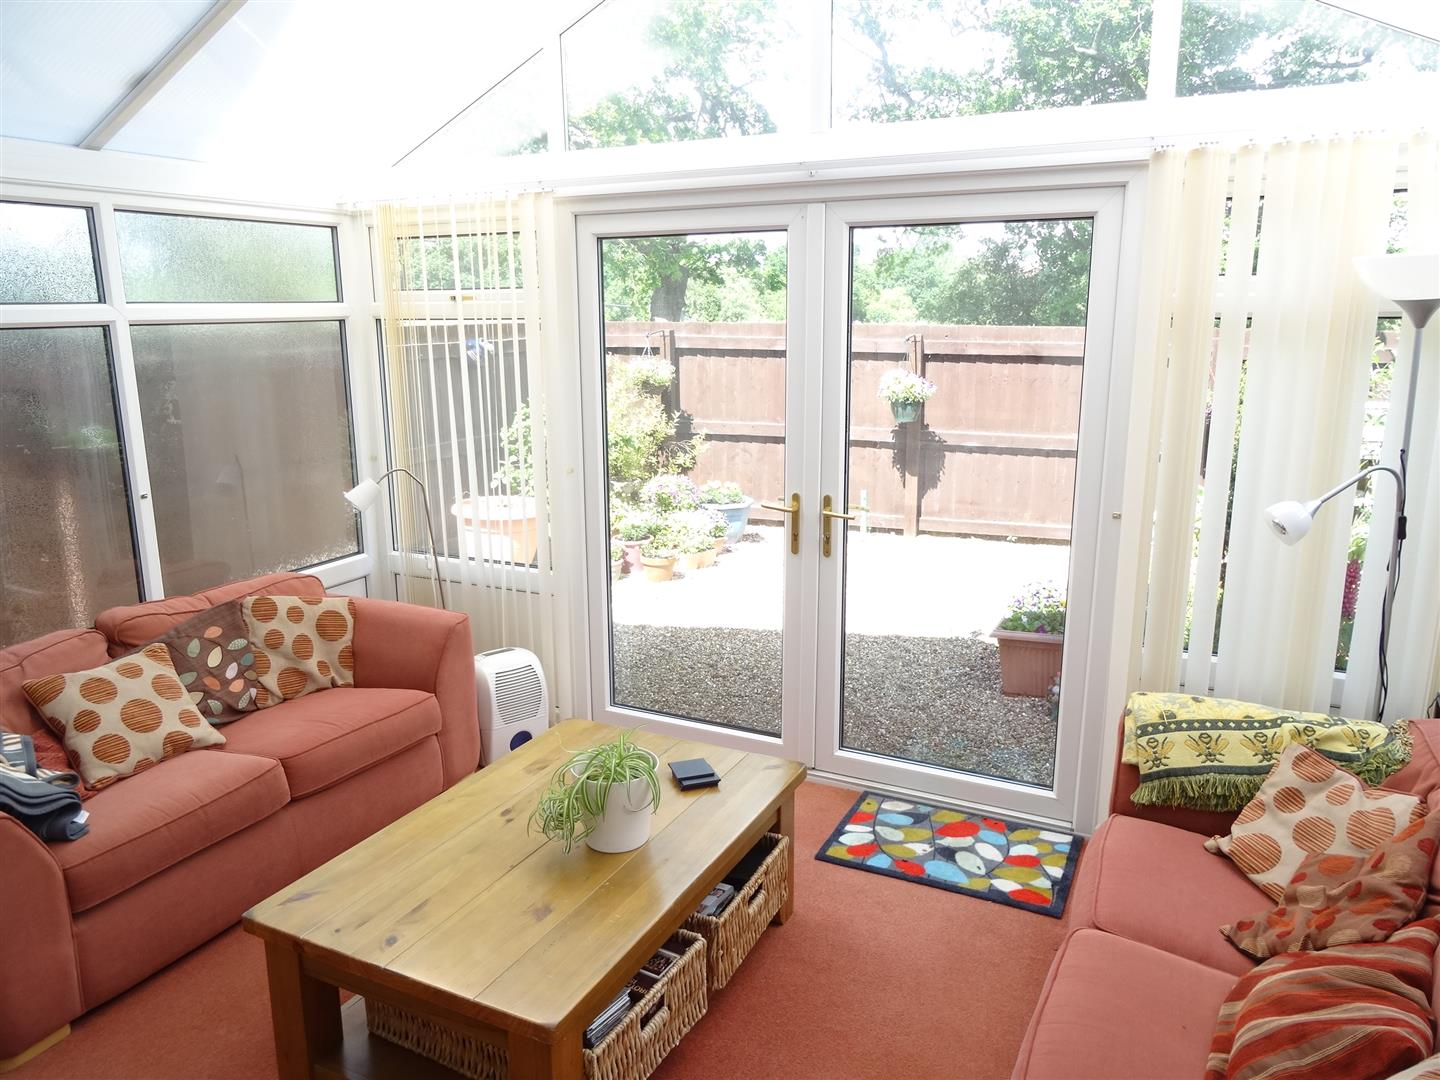 3 Bedrooms House - Semi-Detached For Sale 43 Helvellyn Rise Carlisle